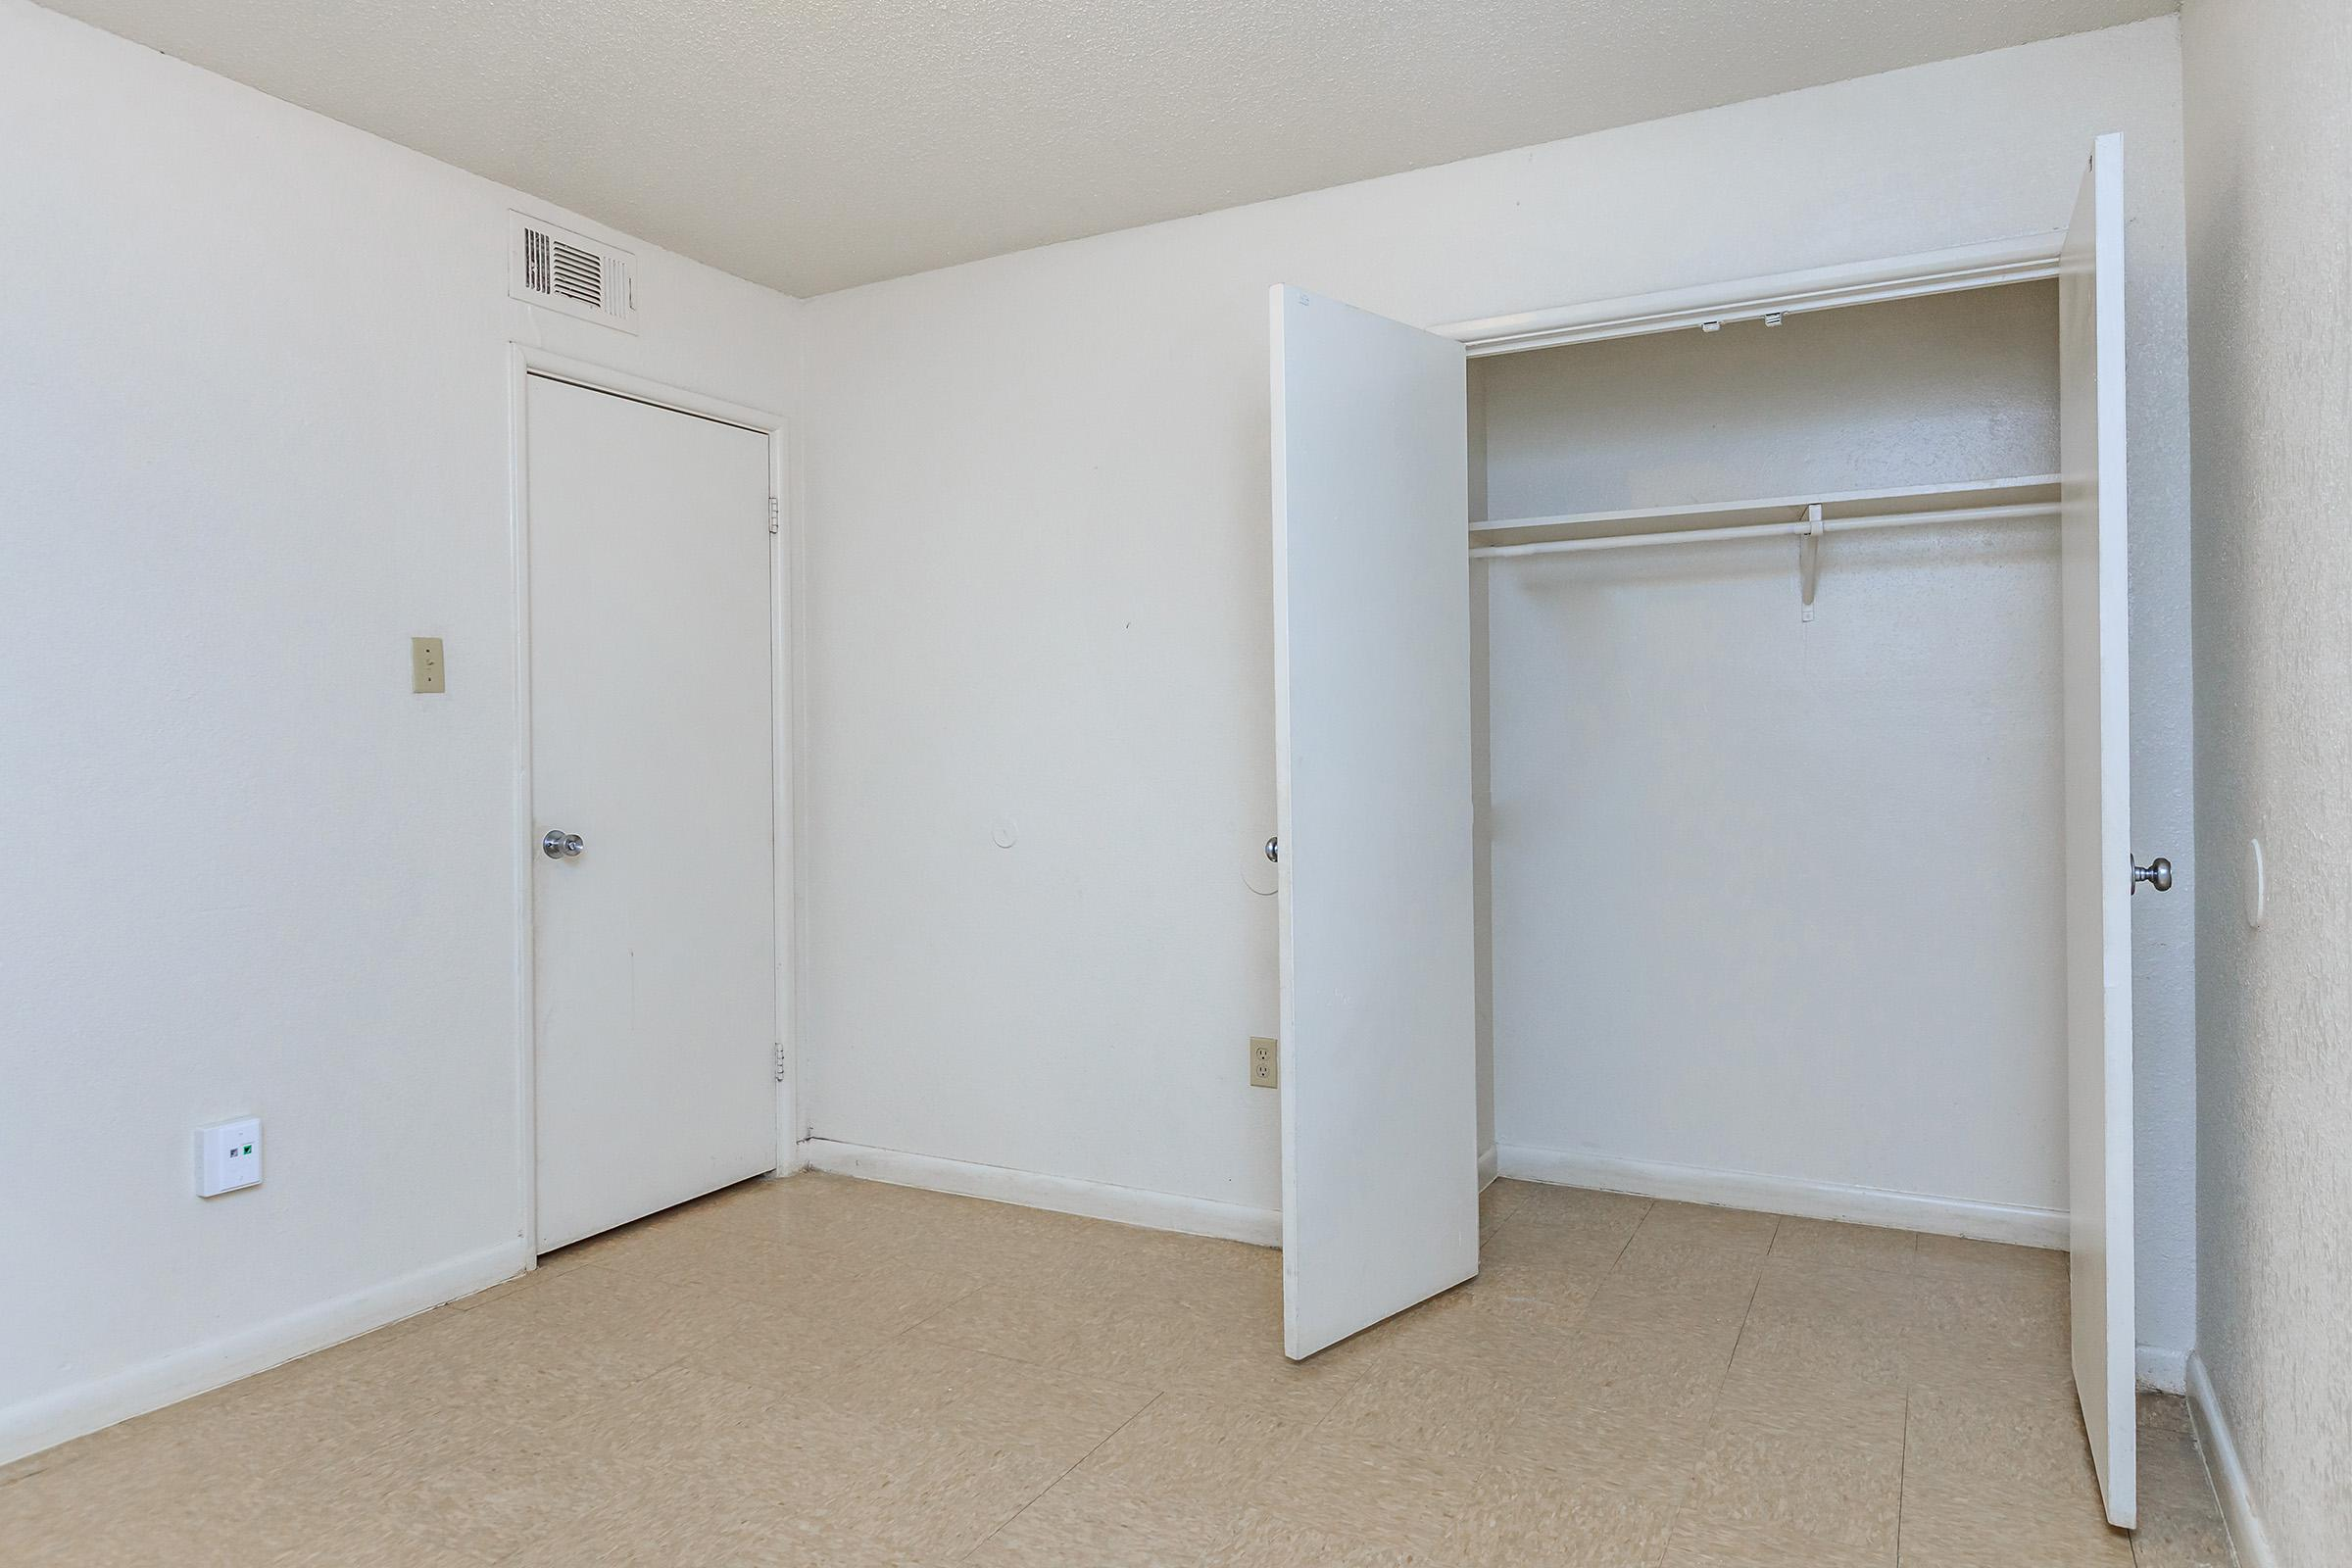 a refrigerator in a room